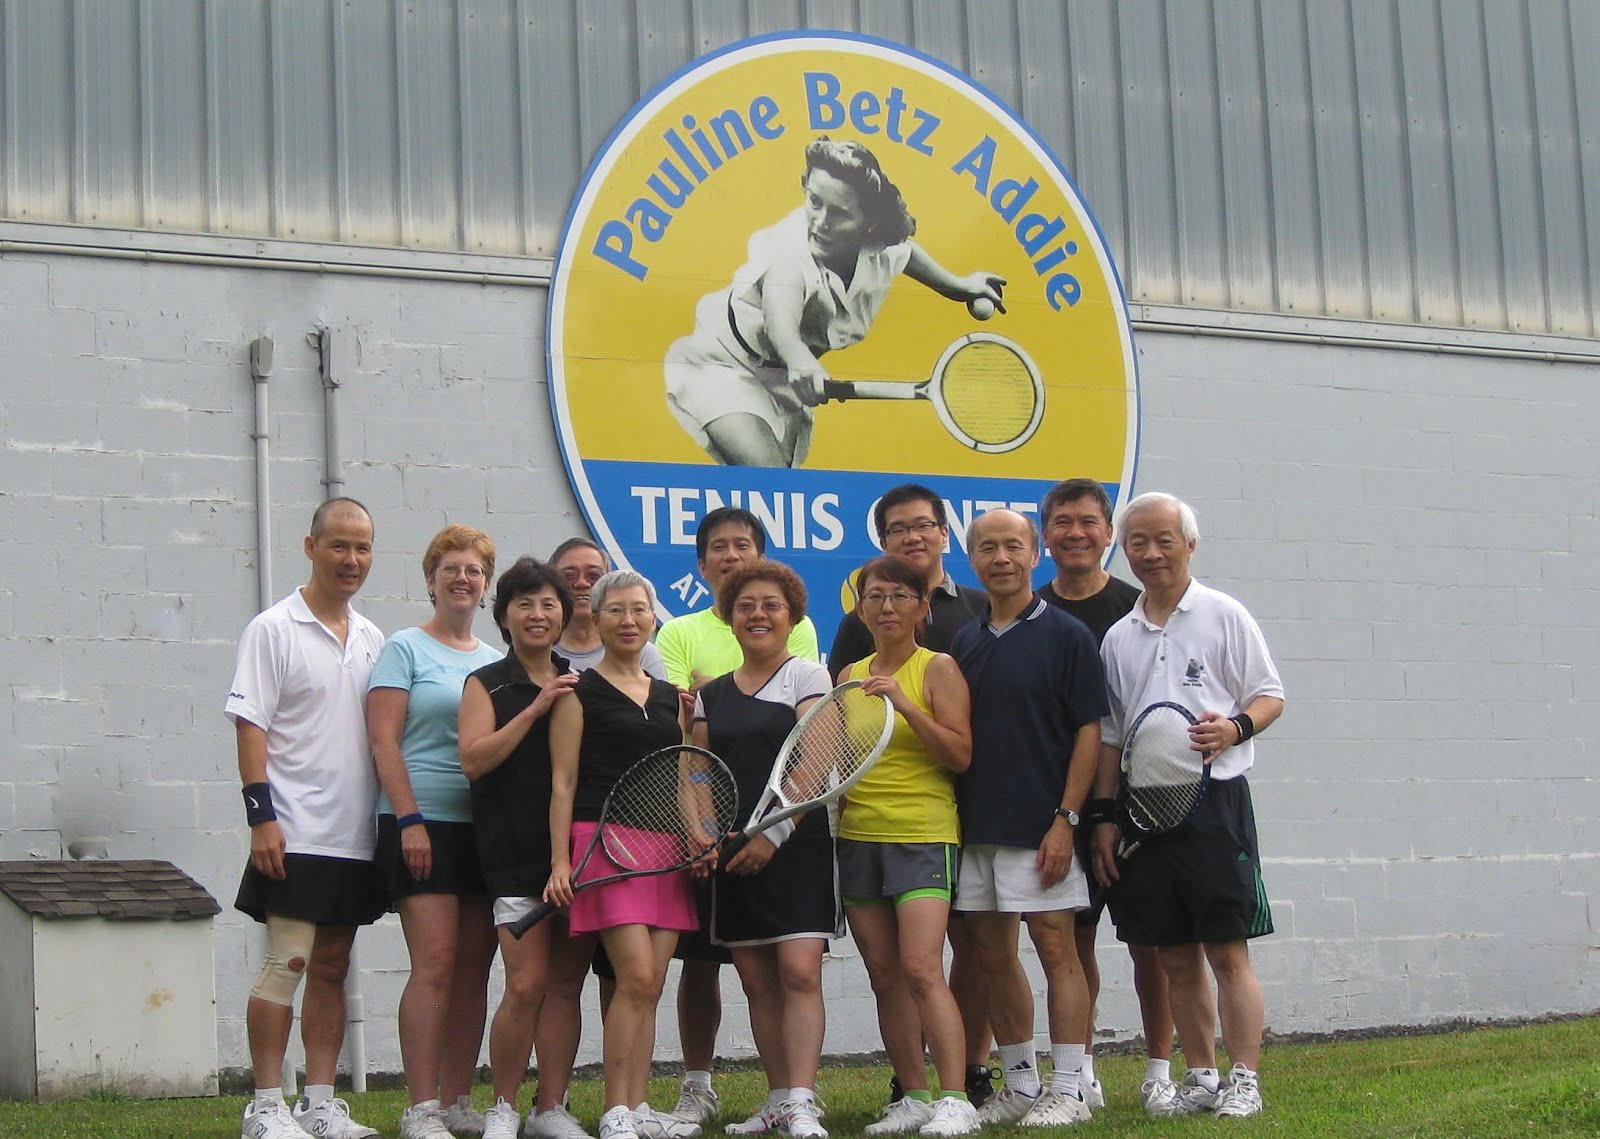 Tennis Friends in the World and HI Successful Aging and